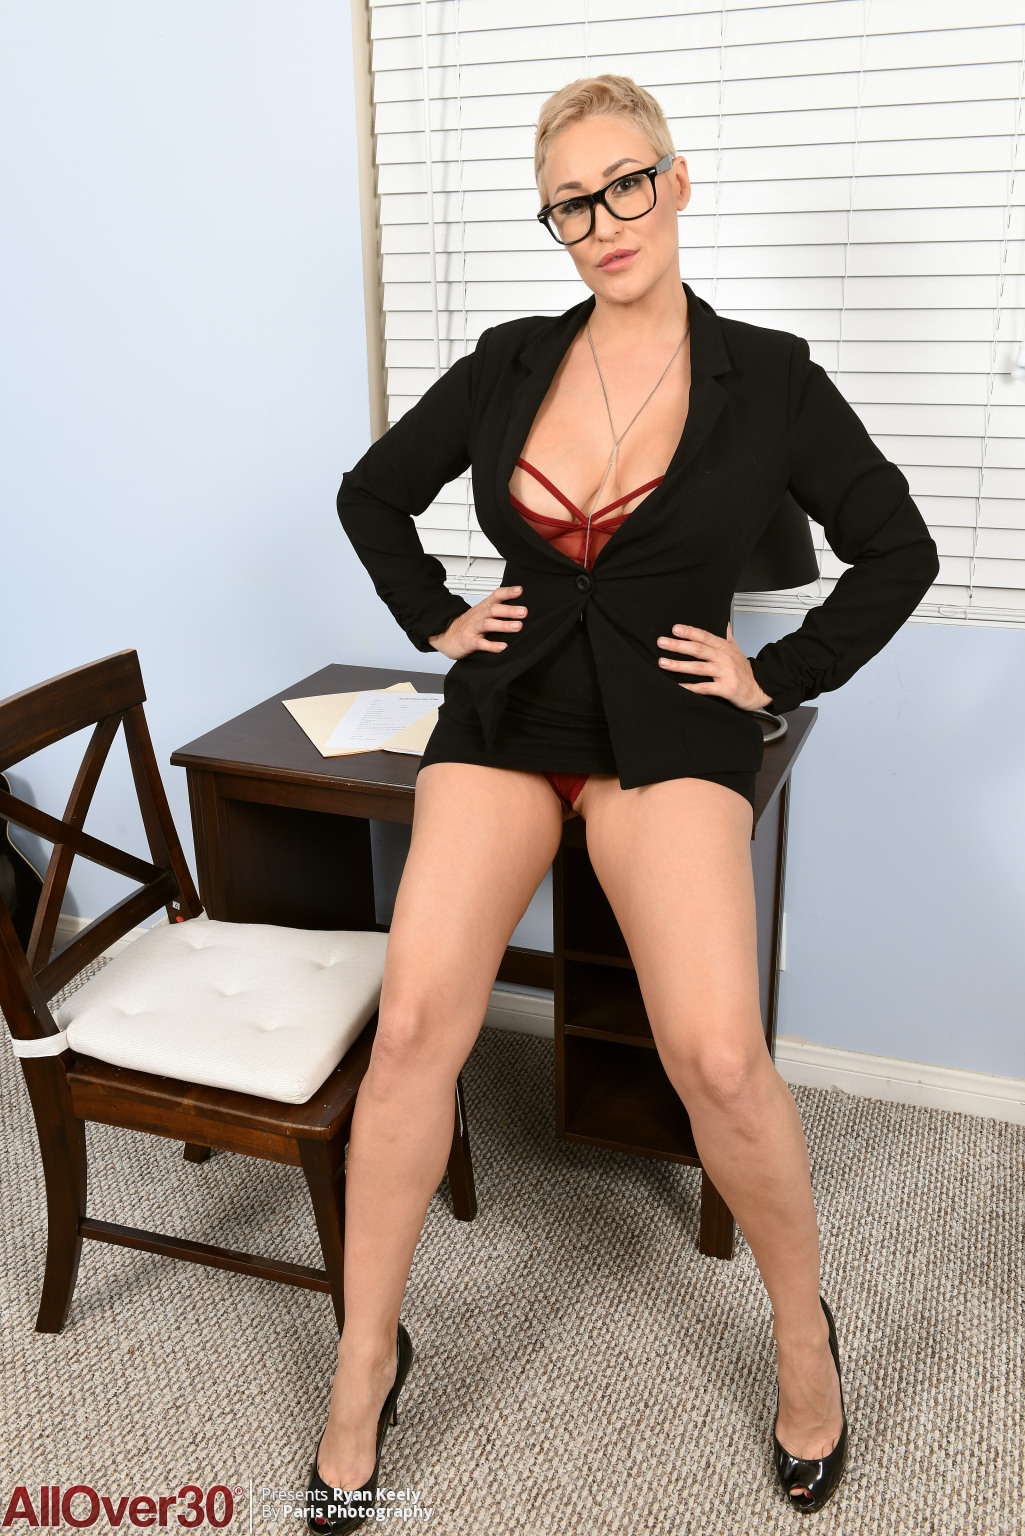 ryan-keely-super-hot-secretary-02